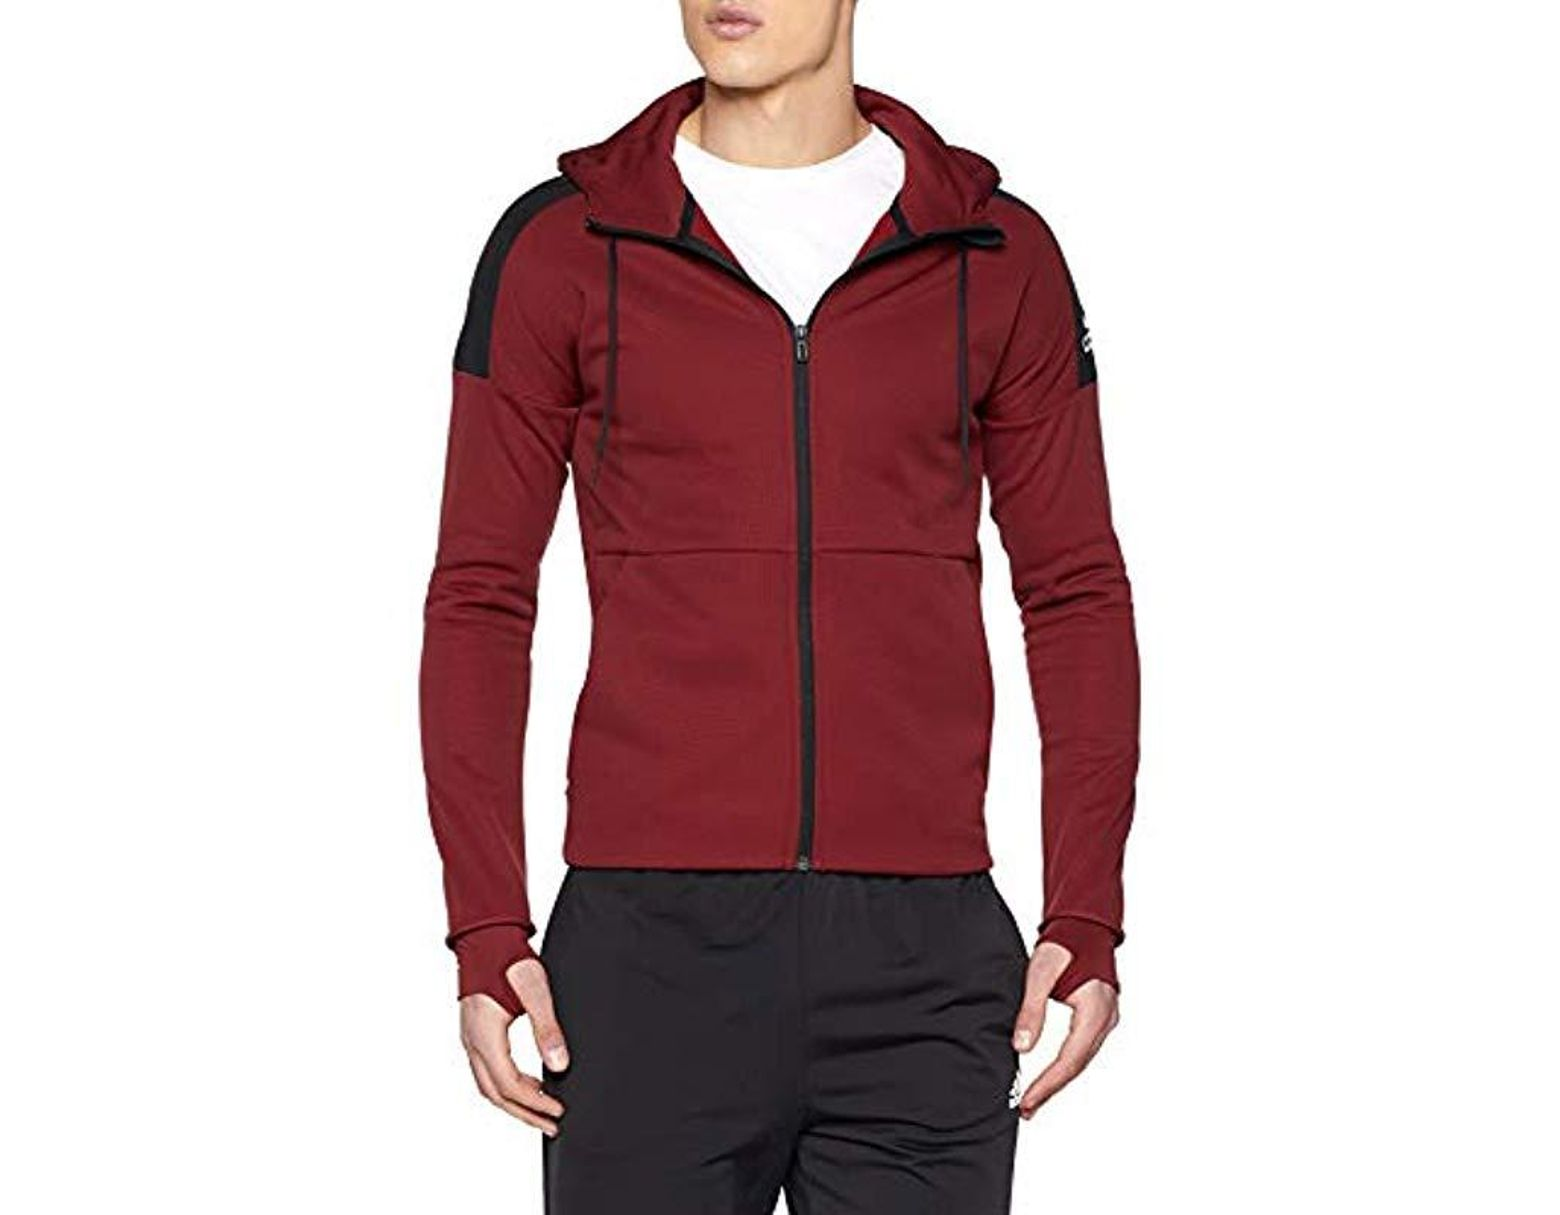 Hoodie Sports M Men's Red Sta Id Fz Ch nP8X0wOk